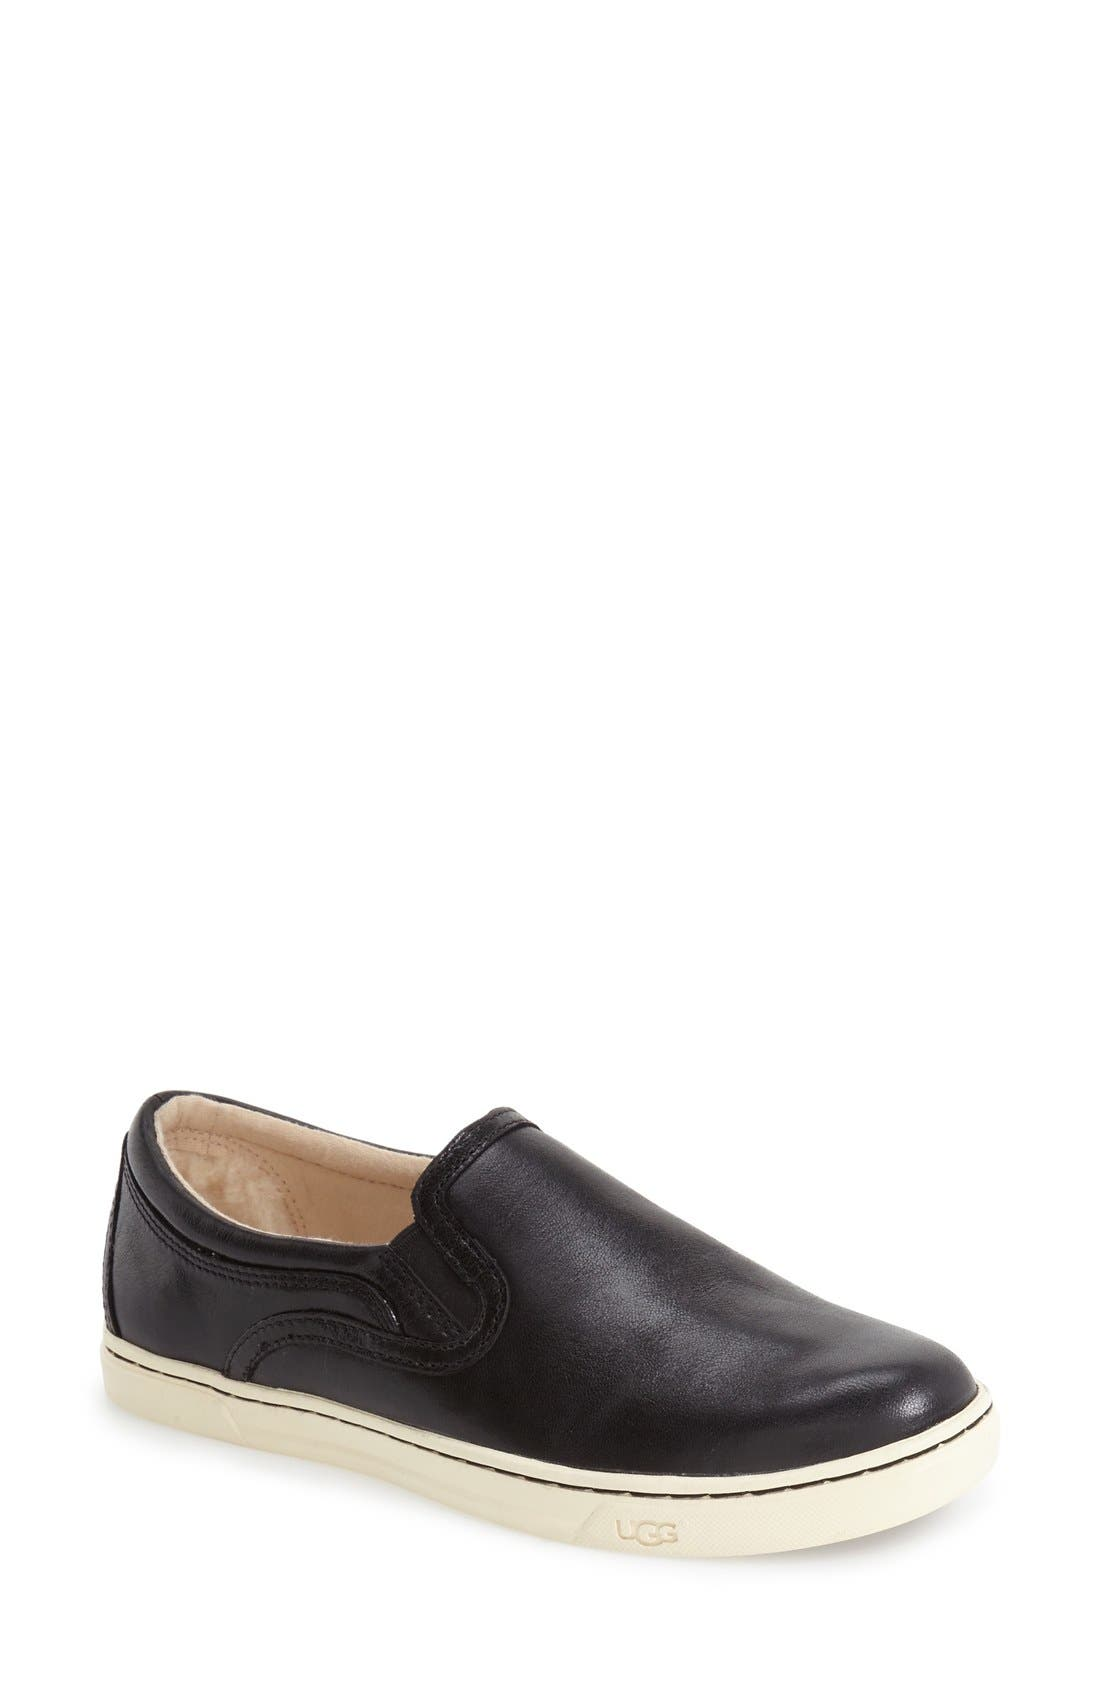 Main Image - UGG® Fierce Sneaker (Women). Color: Black Leather